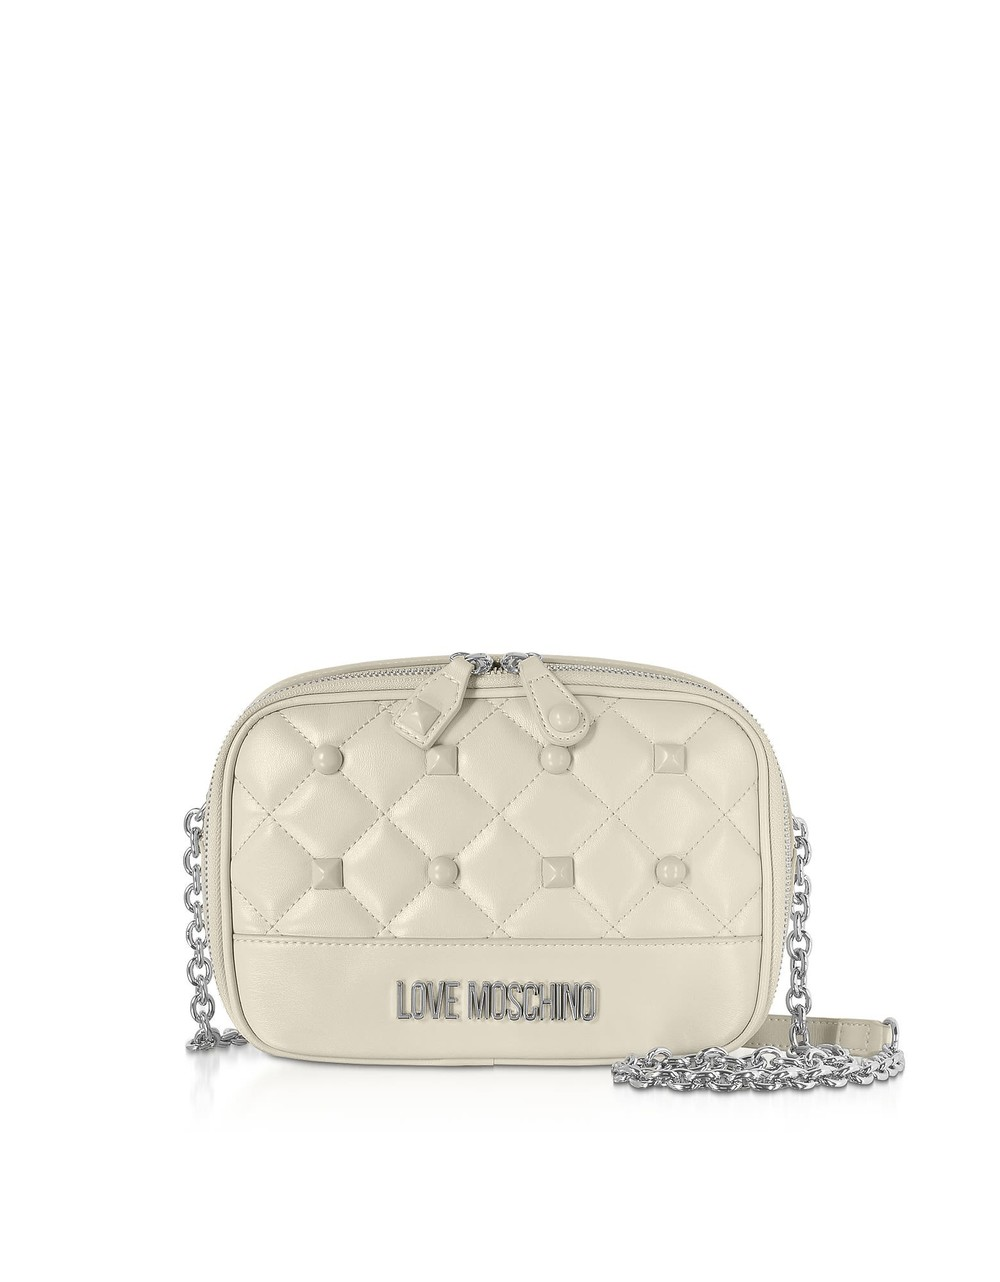 Love Moschino Quilted Eco-leather Crossbody Bag W/ Studs in ivory